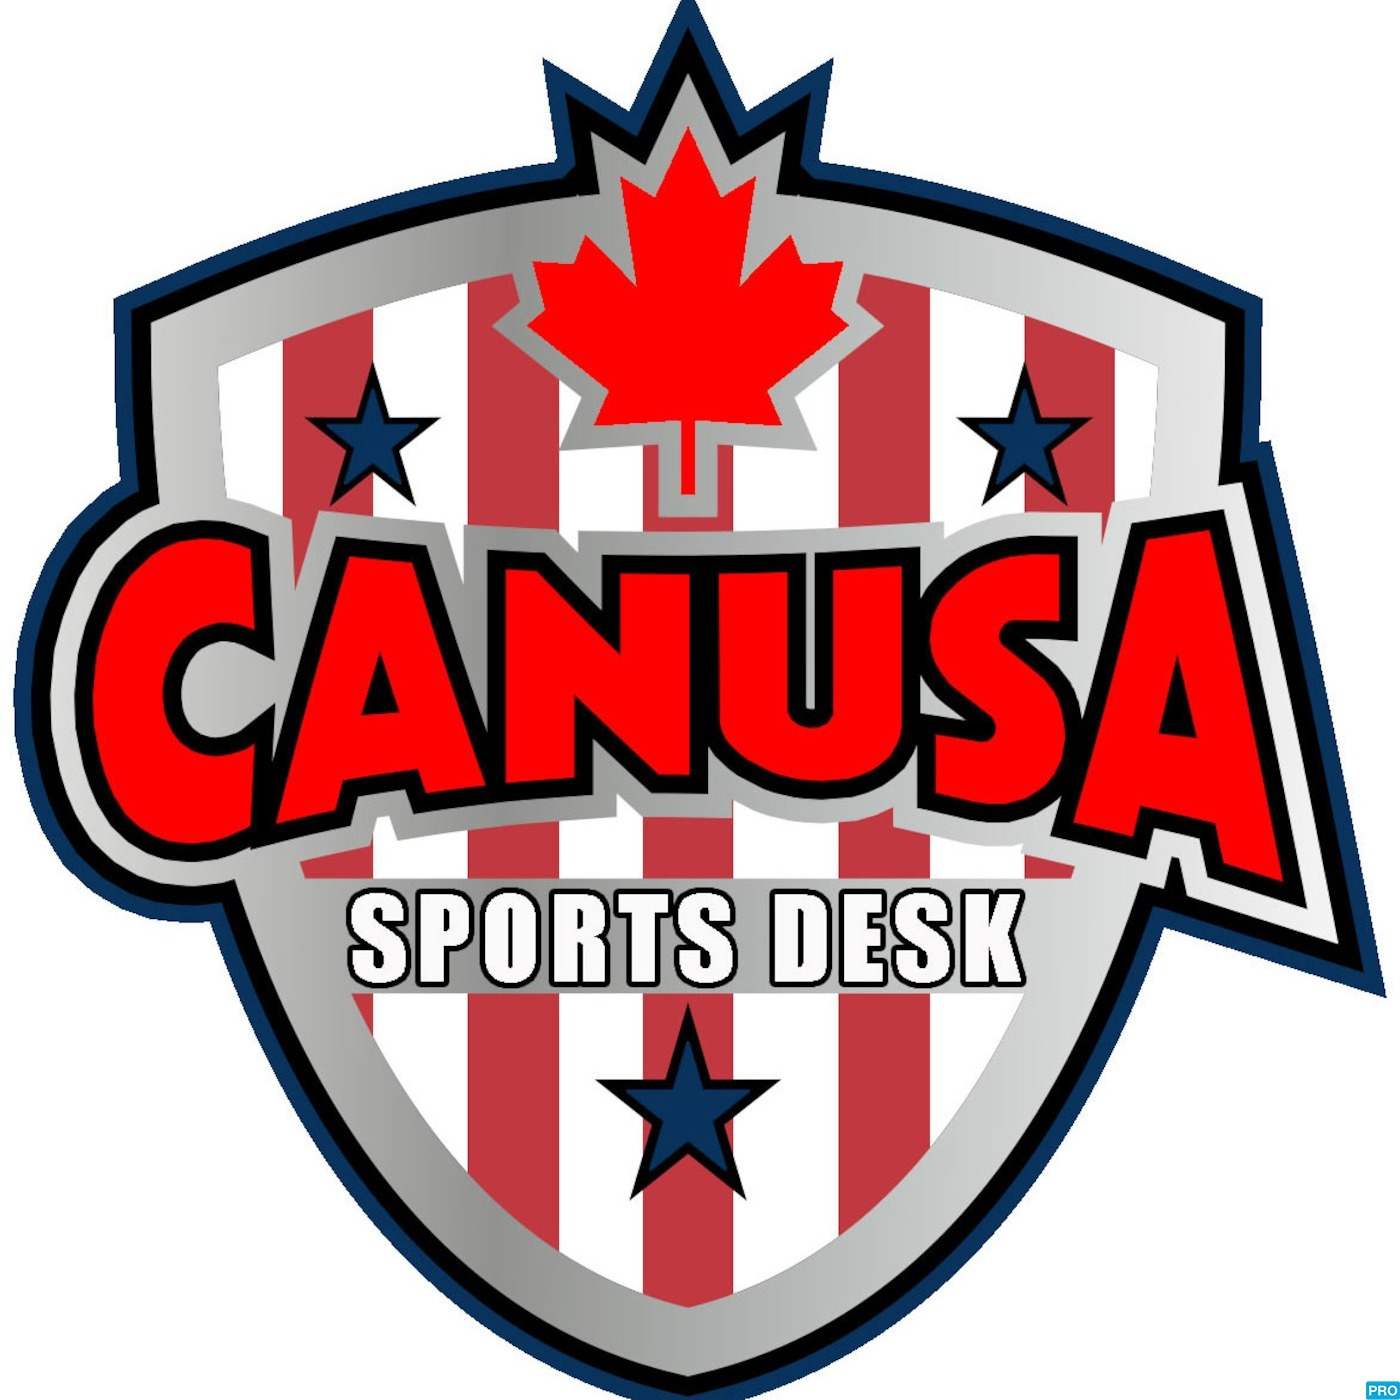 CANUSA Sports Desk on FansFrenzy Radio